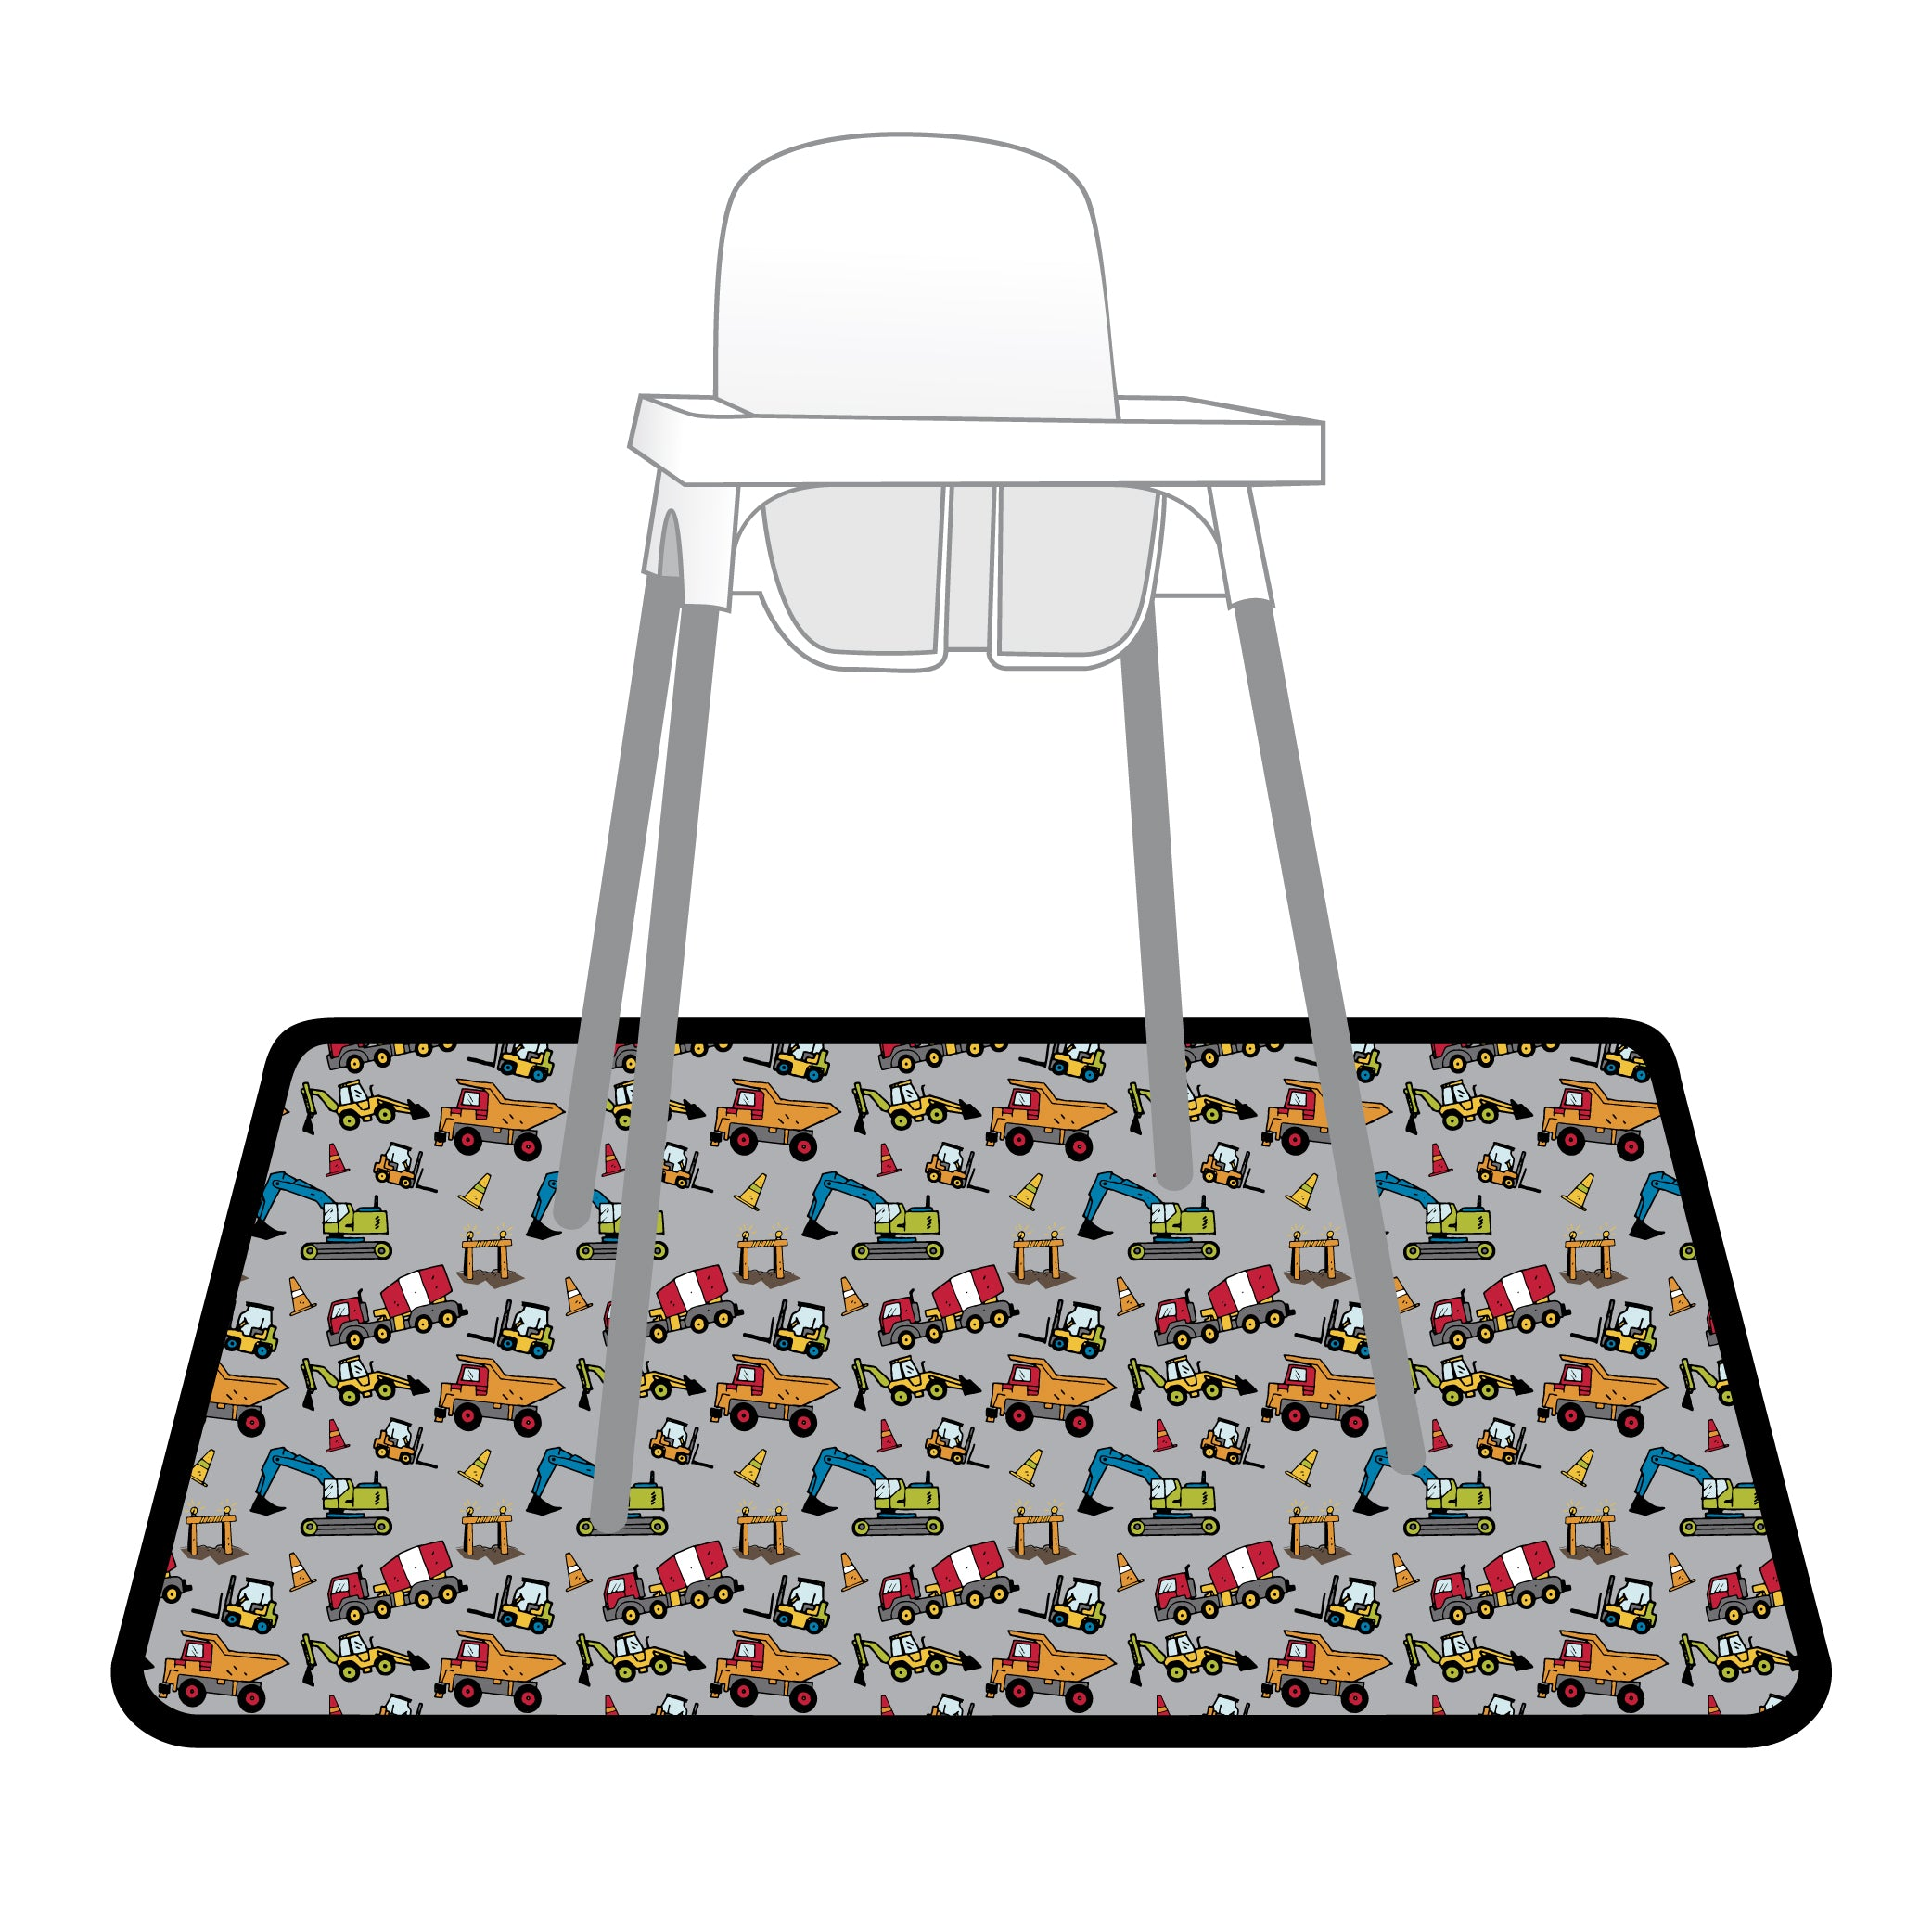 Construction Zone Splash Mat - A Waterproof Catch-All for Highchair Spills and More!